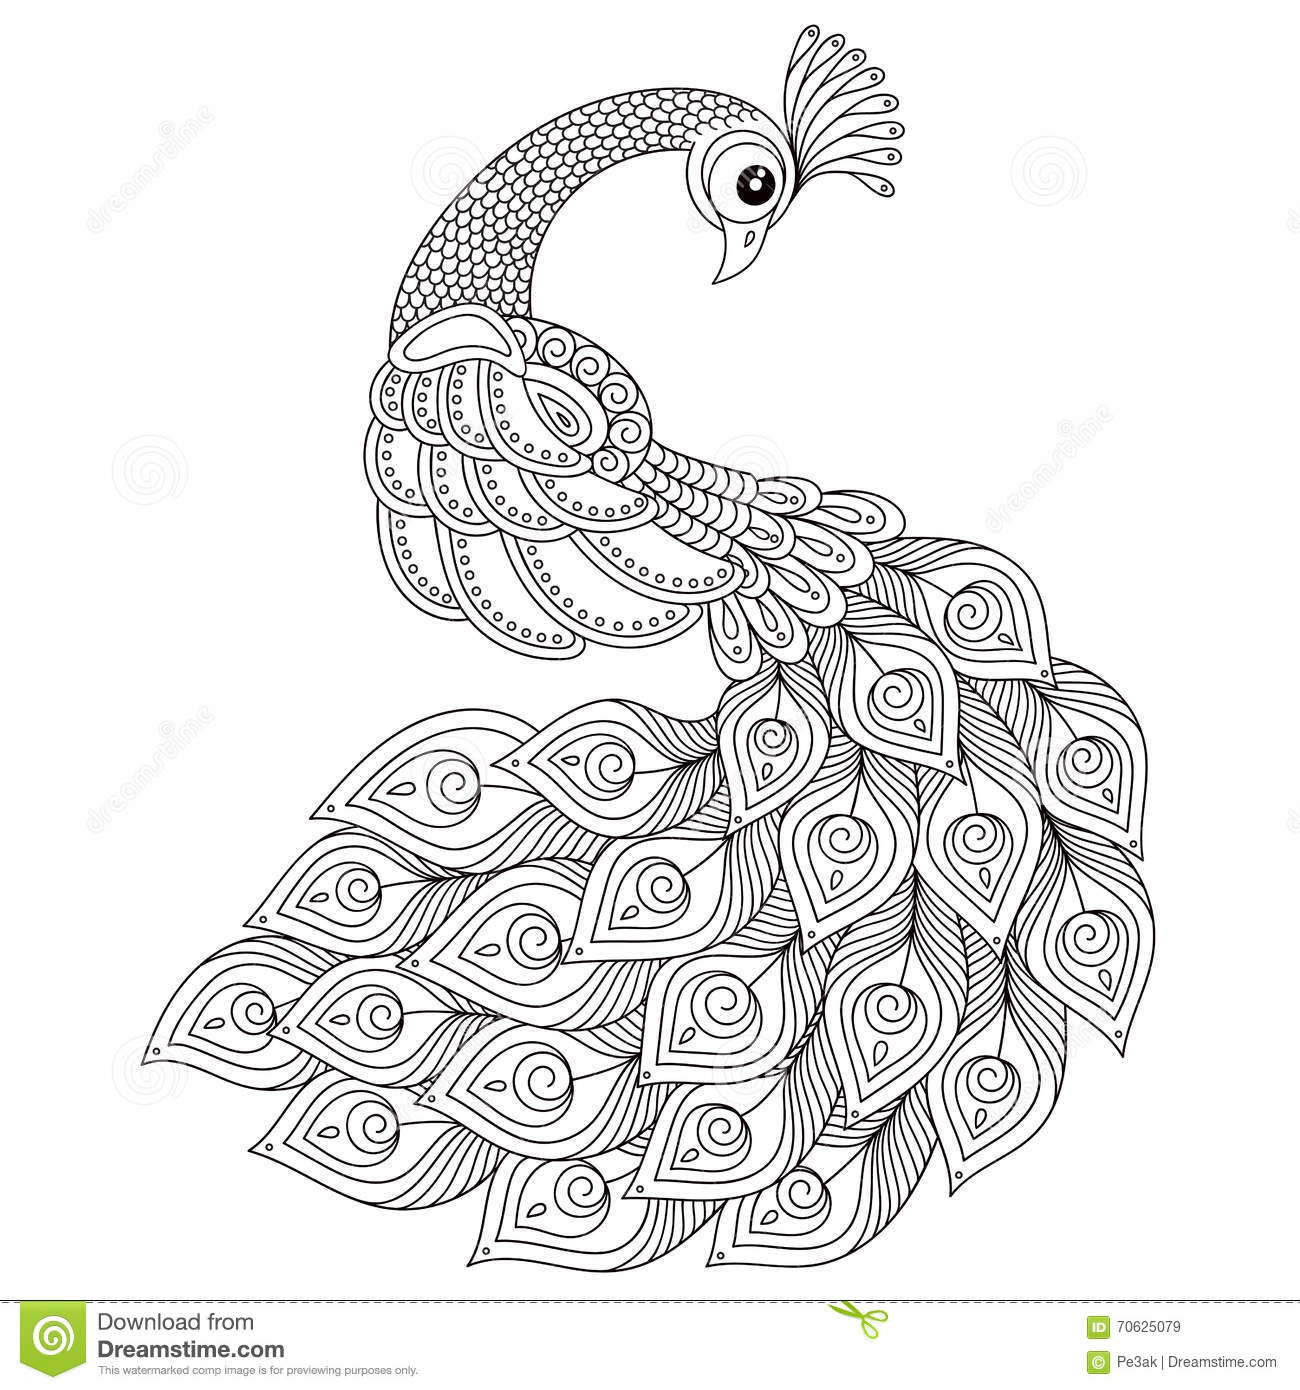 Royalty Free Vector Download Peacock Adult Antistress Coloring Page